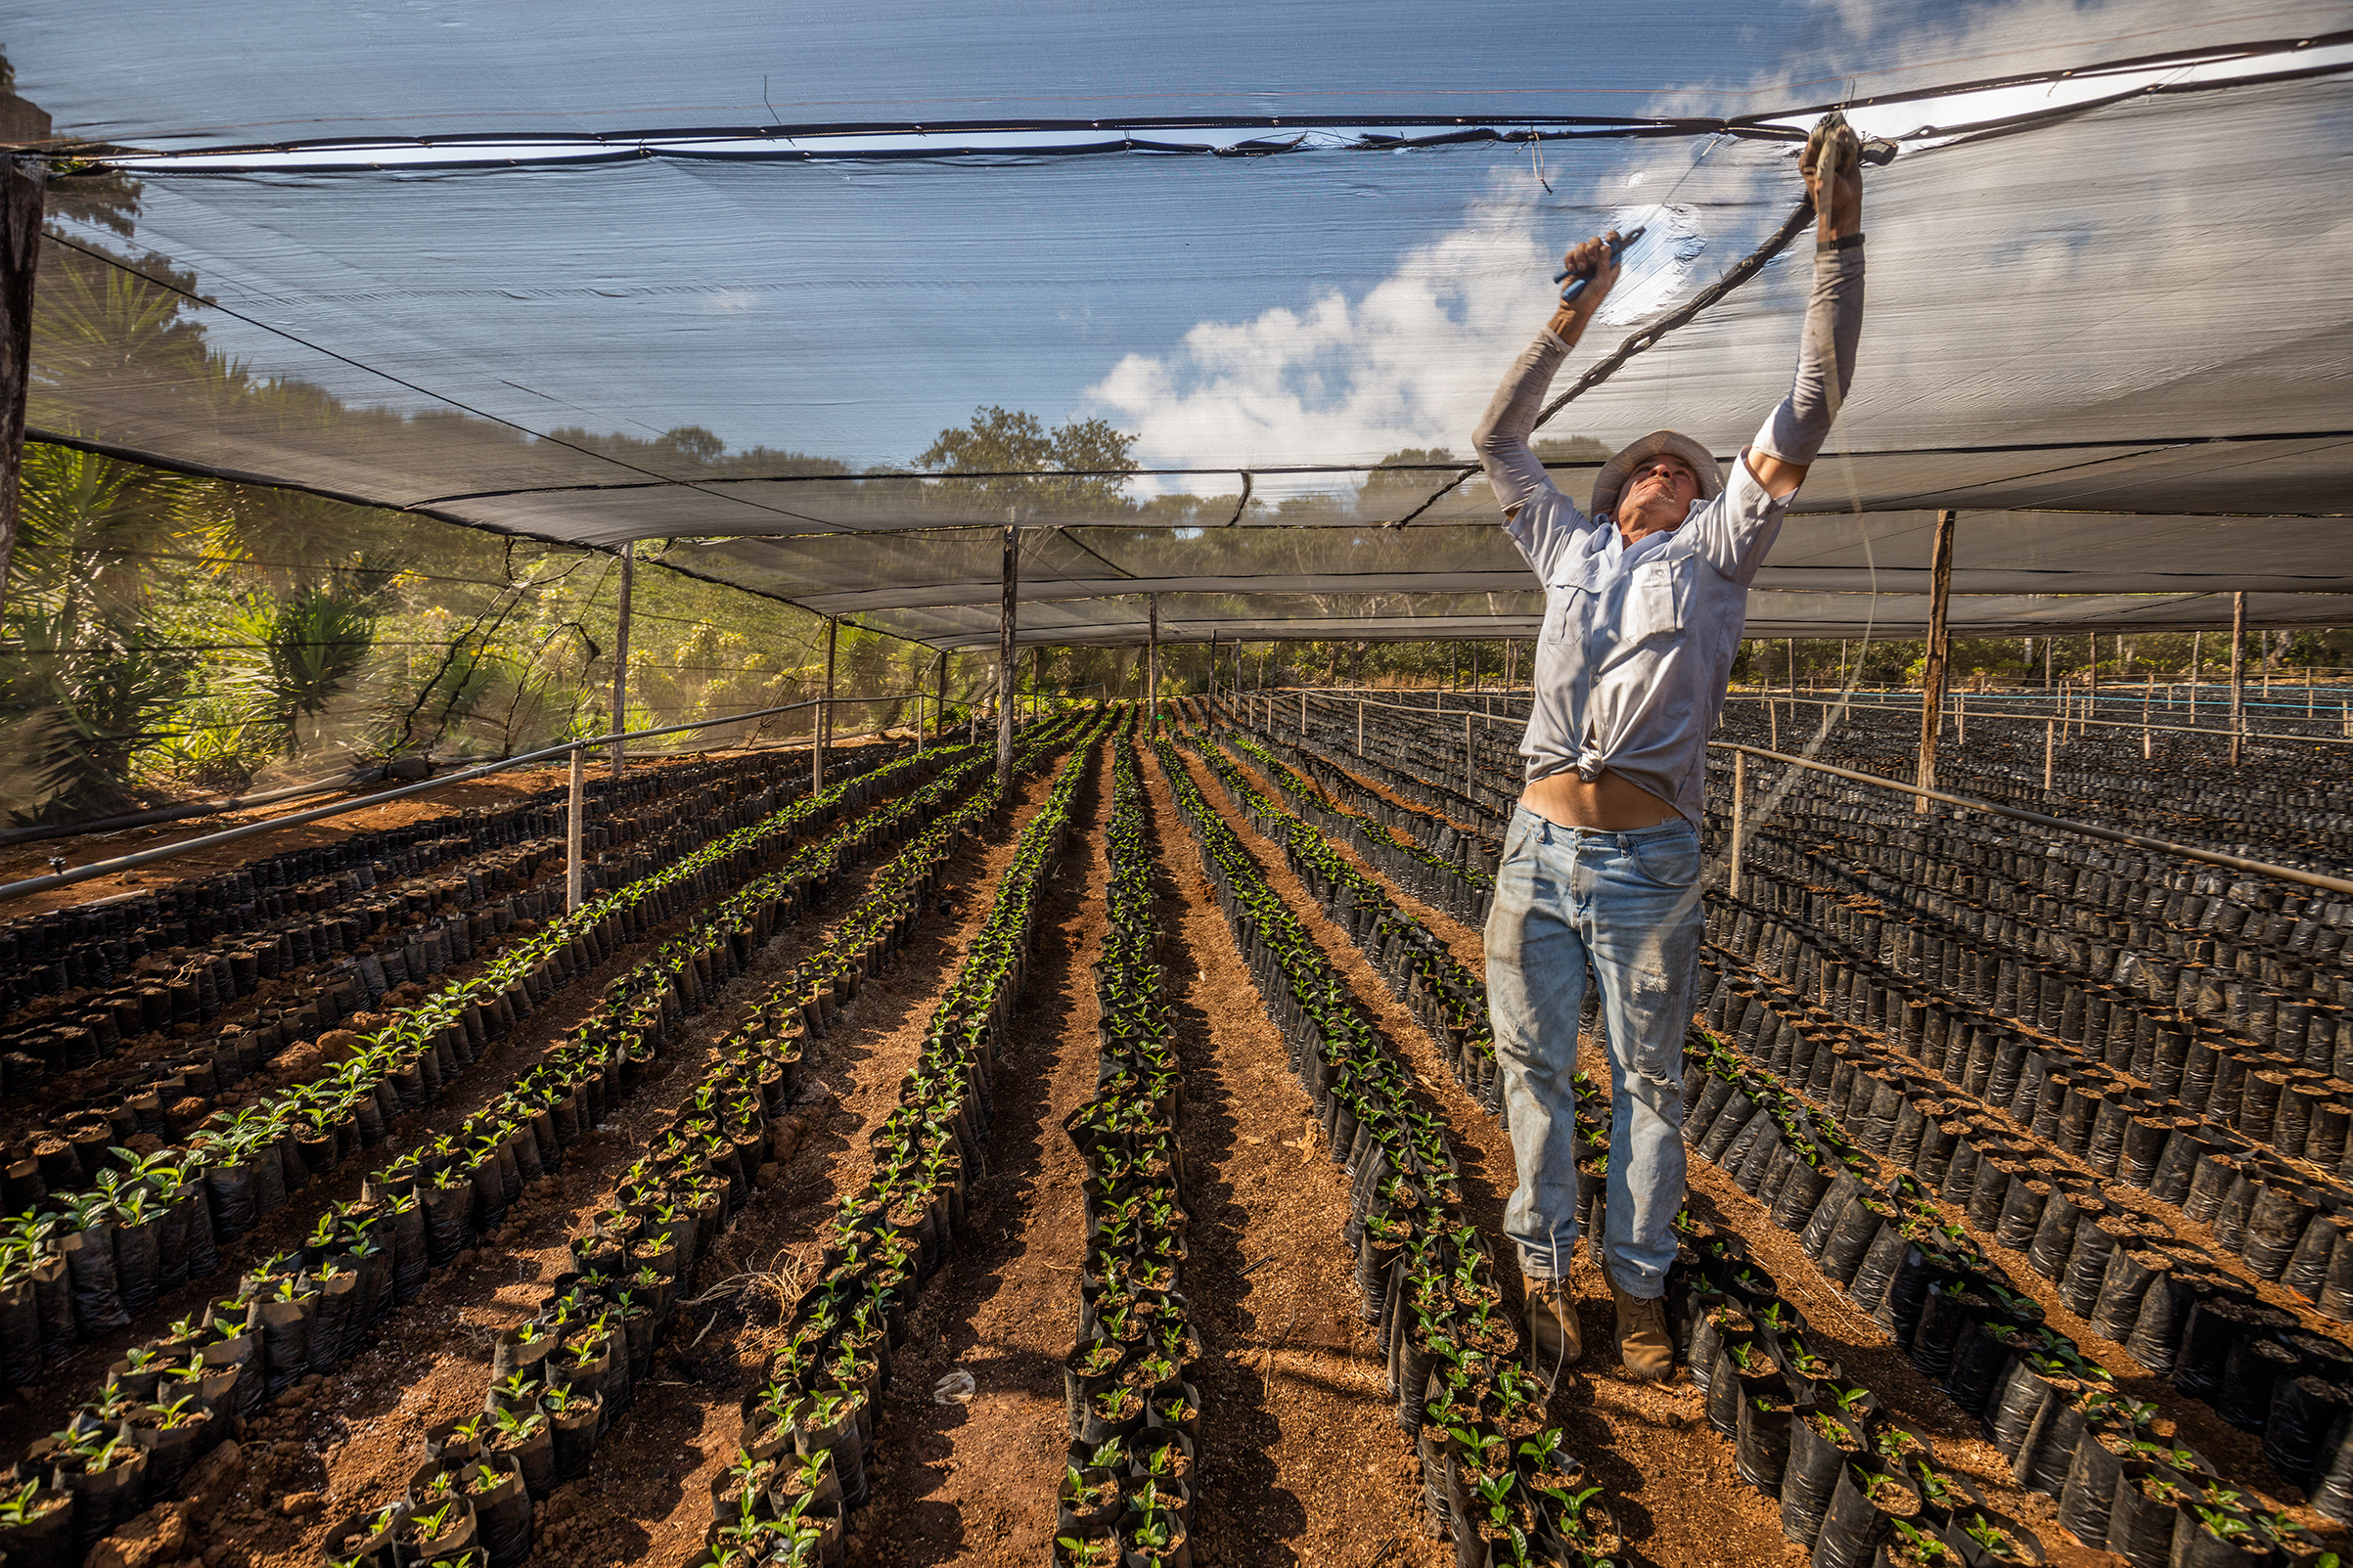 A worker fixes netting at a nursery that grows disease-resistant varieties of coffee in Bajo Corrales, Costa Rica